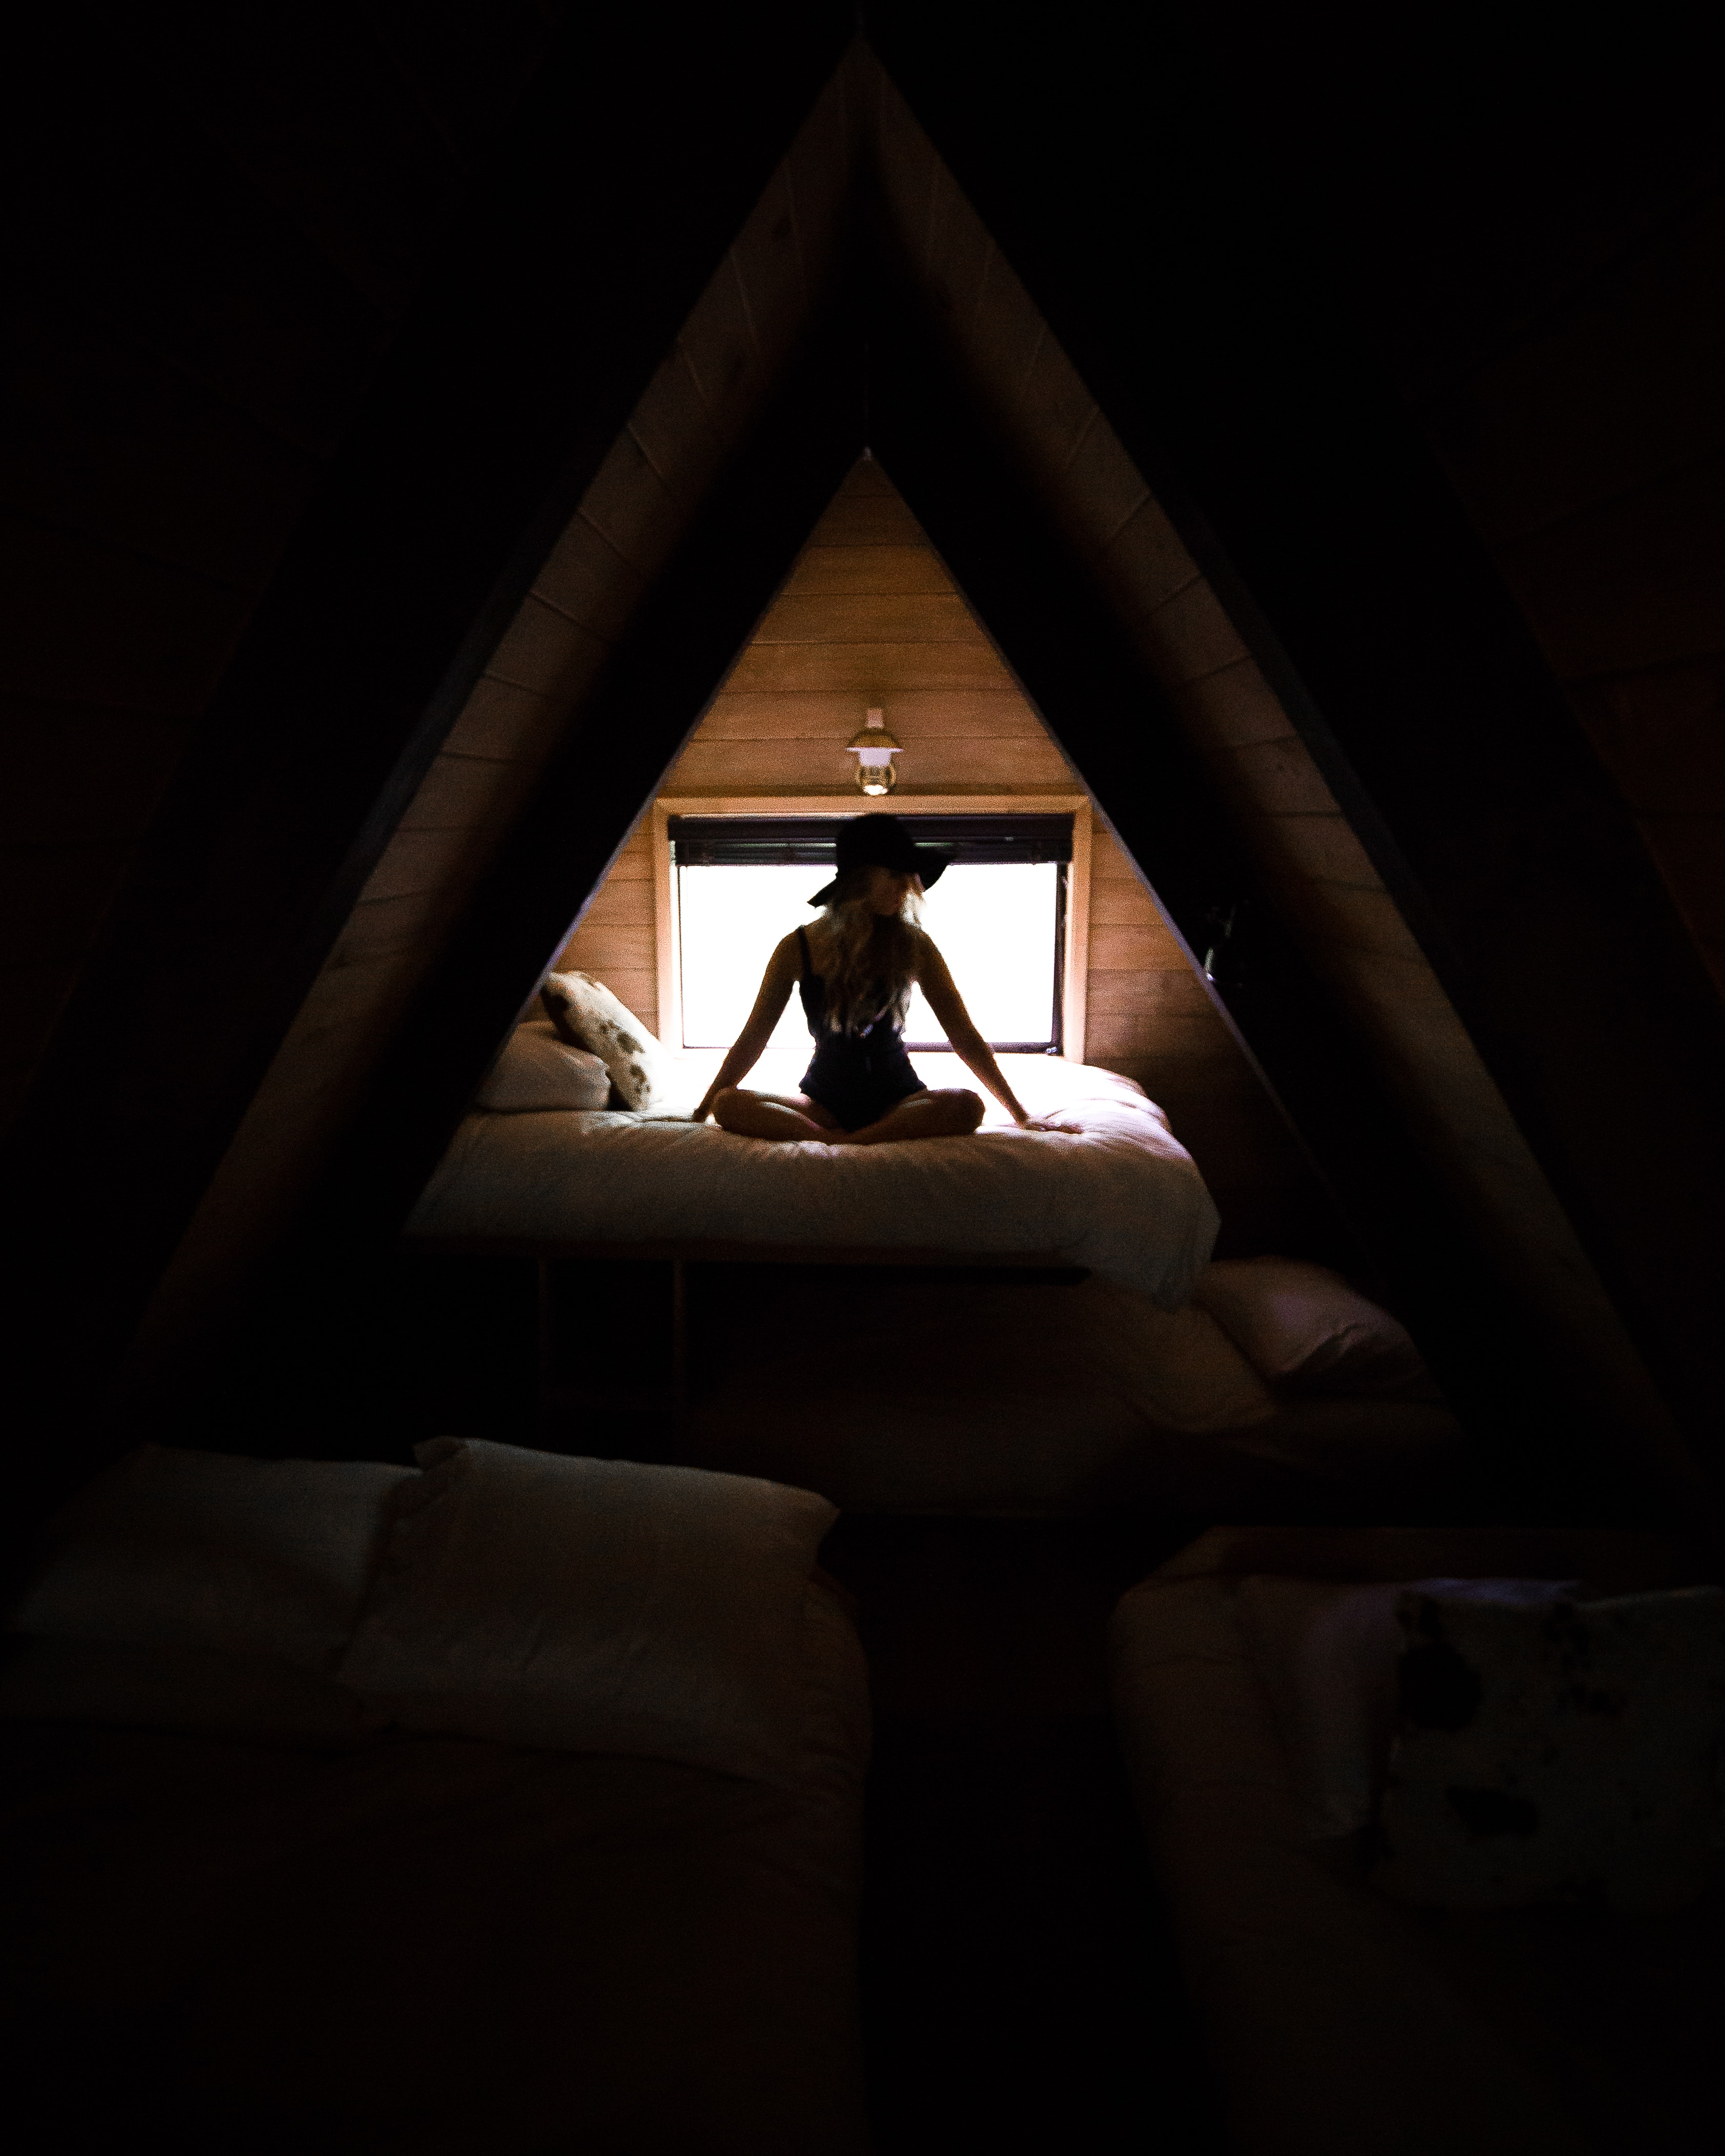 silhouette photography of woman sitting on bed